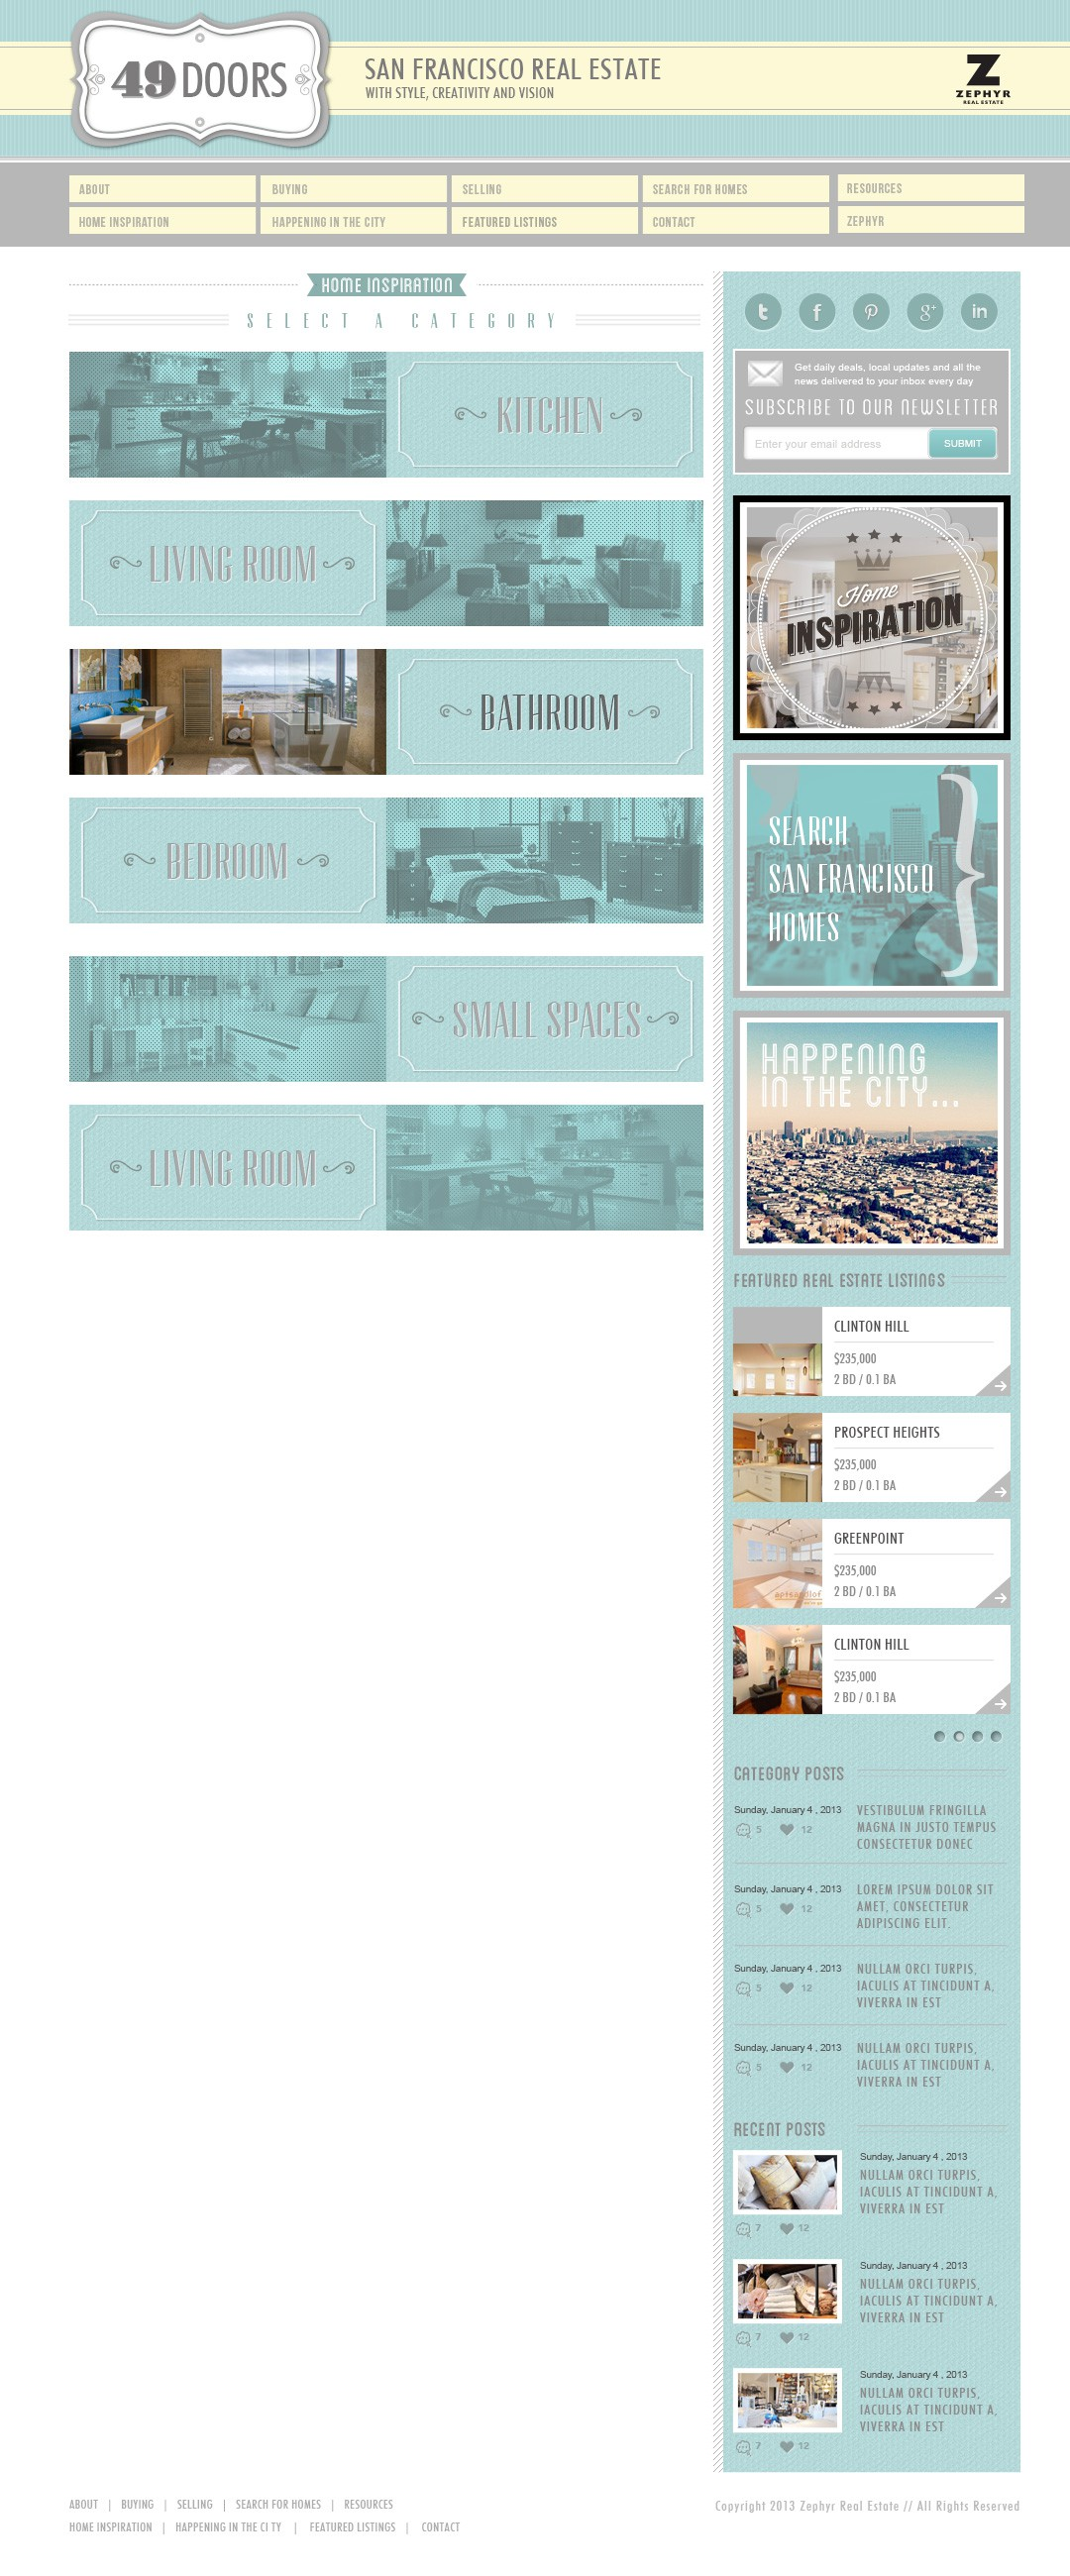 Design an awesome look for a real estate website that doesn't look like a real estate website